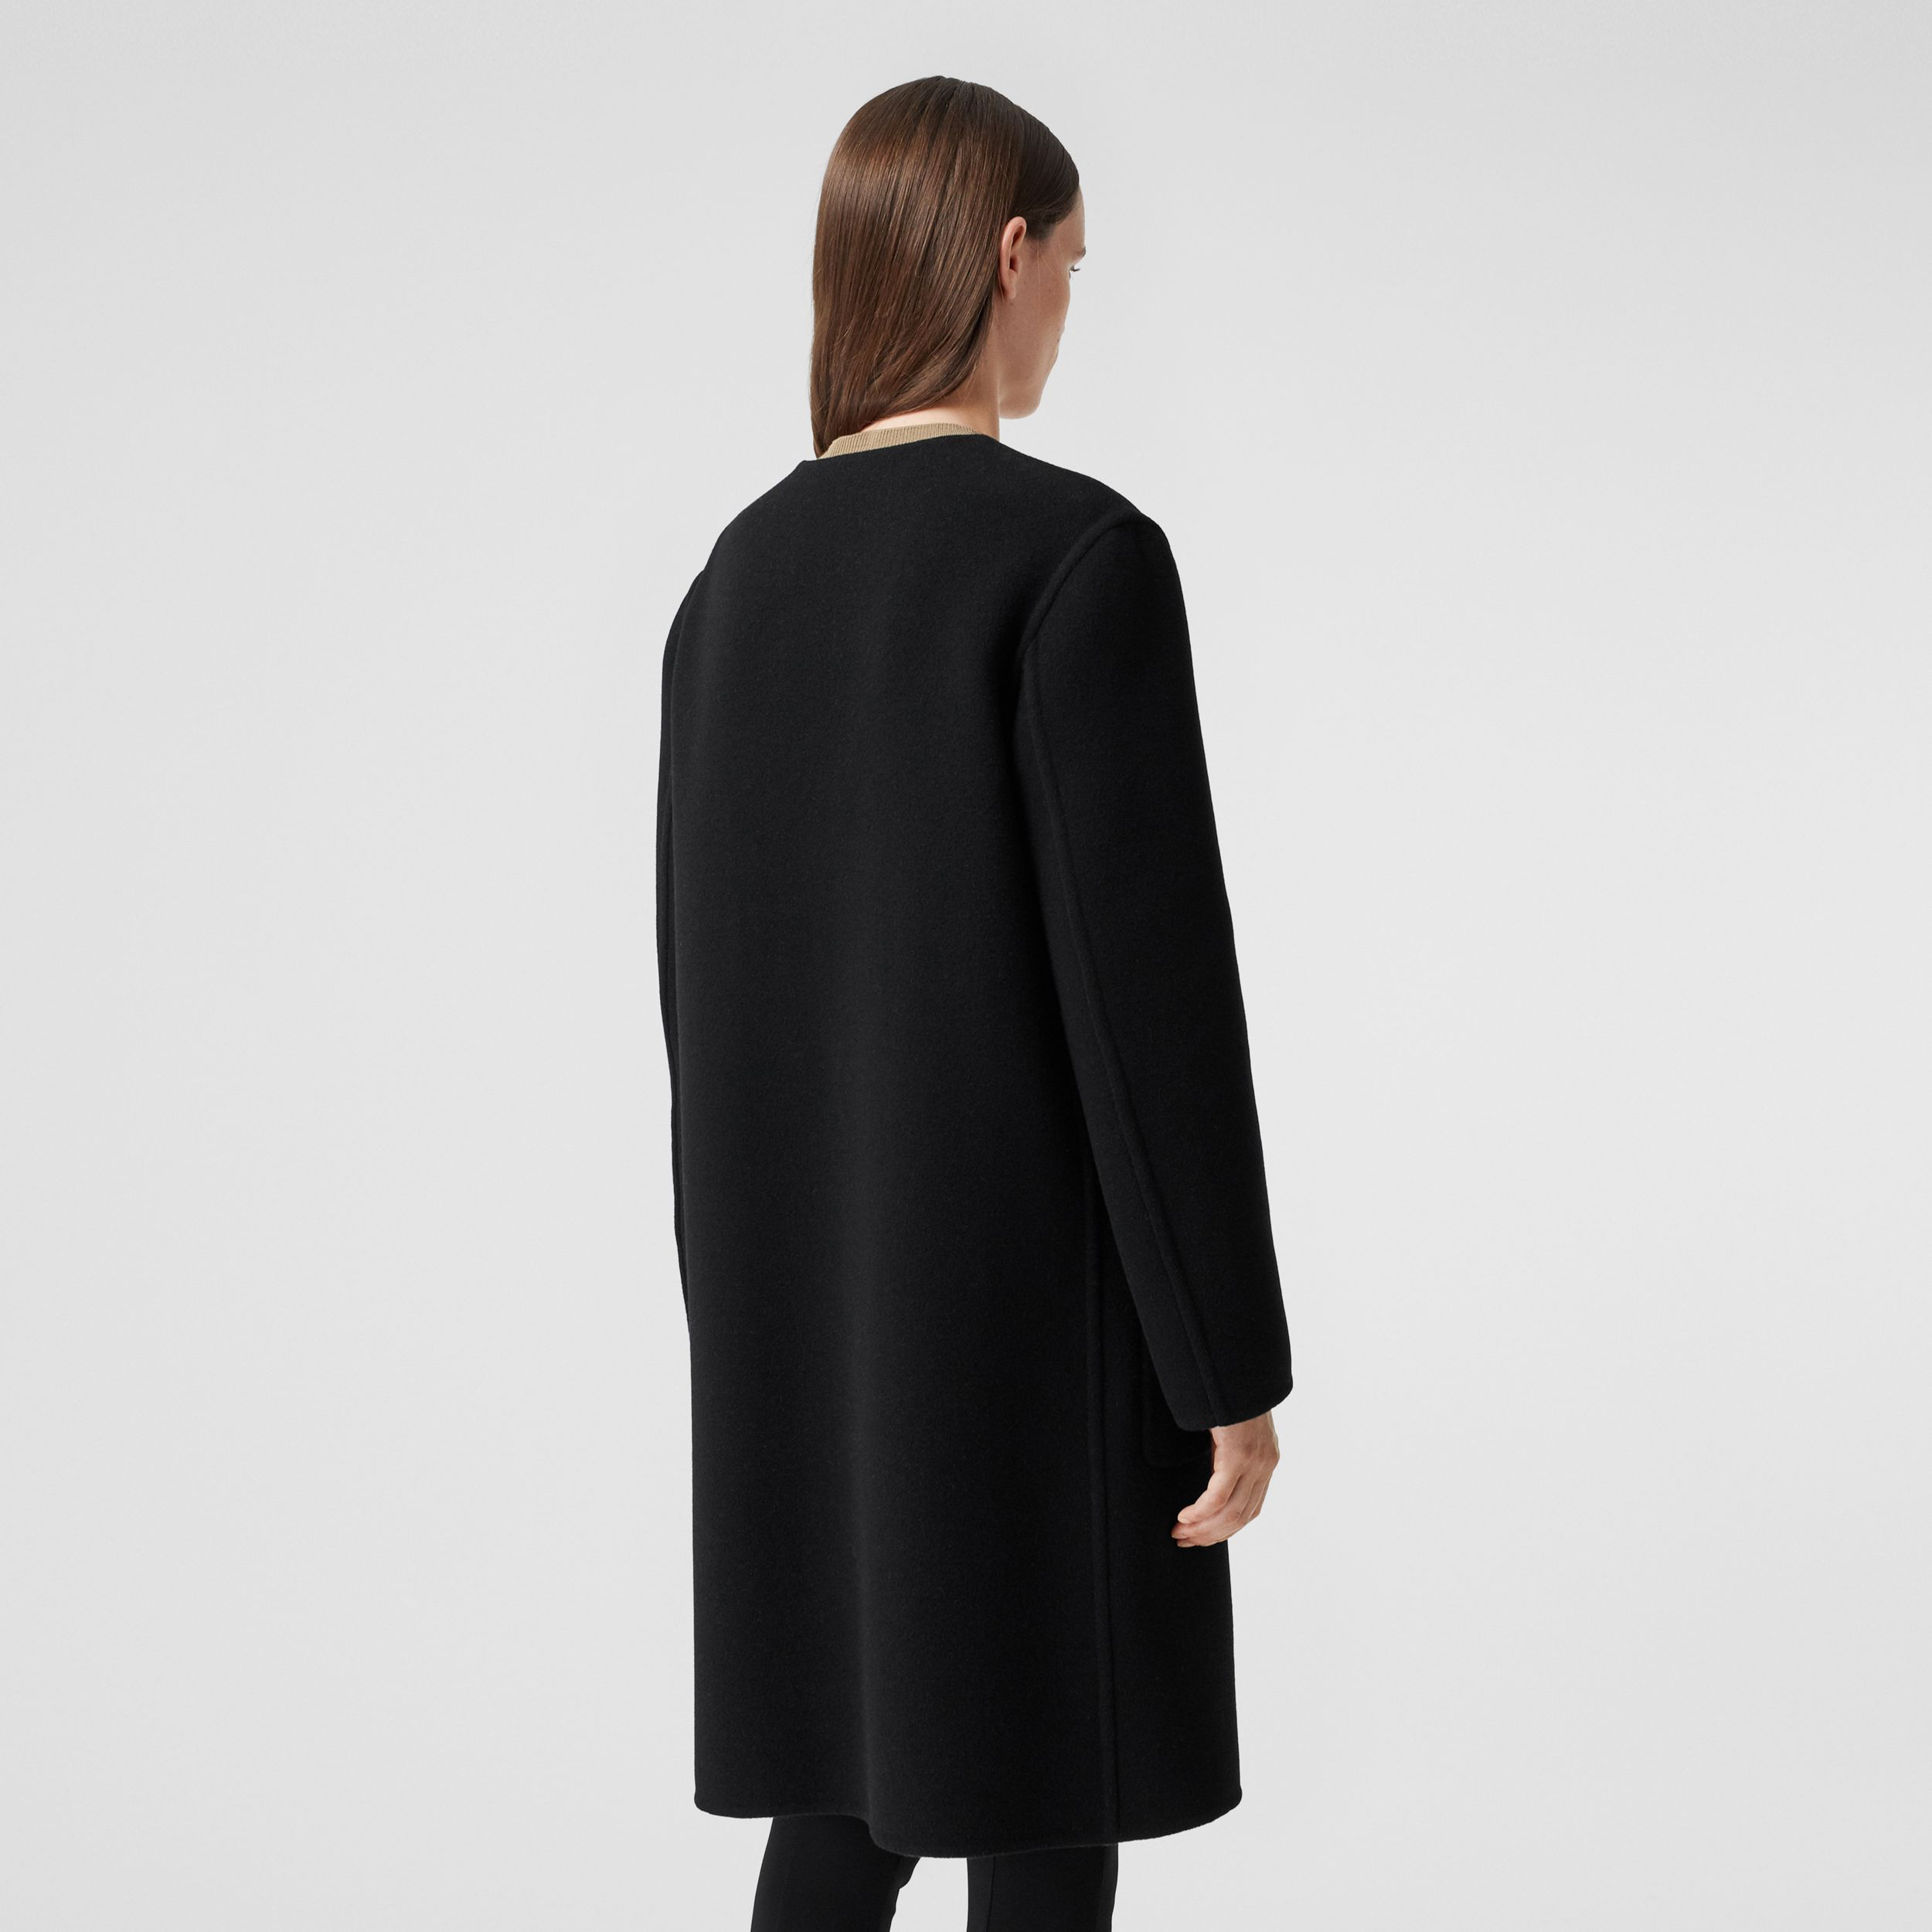 Reversible Check Technical Wool Coat in Black - Women | Burberry Singapore - 3